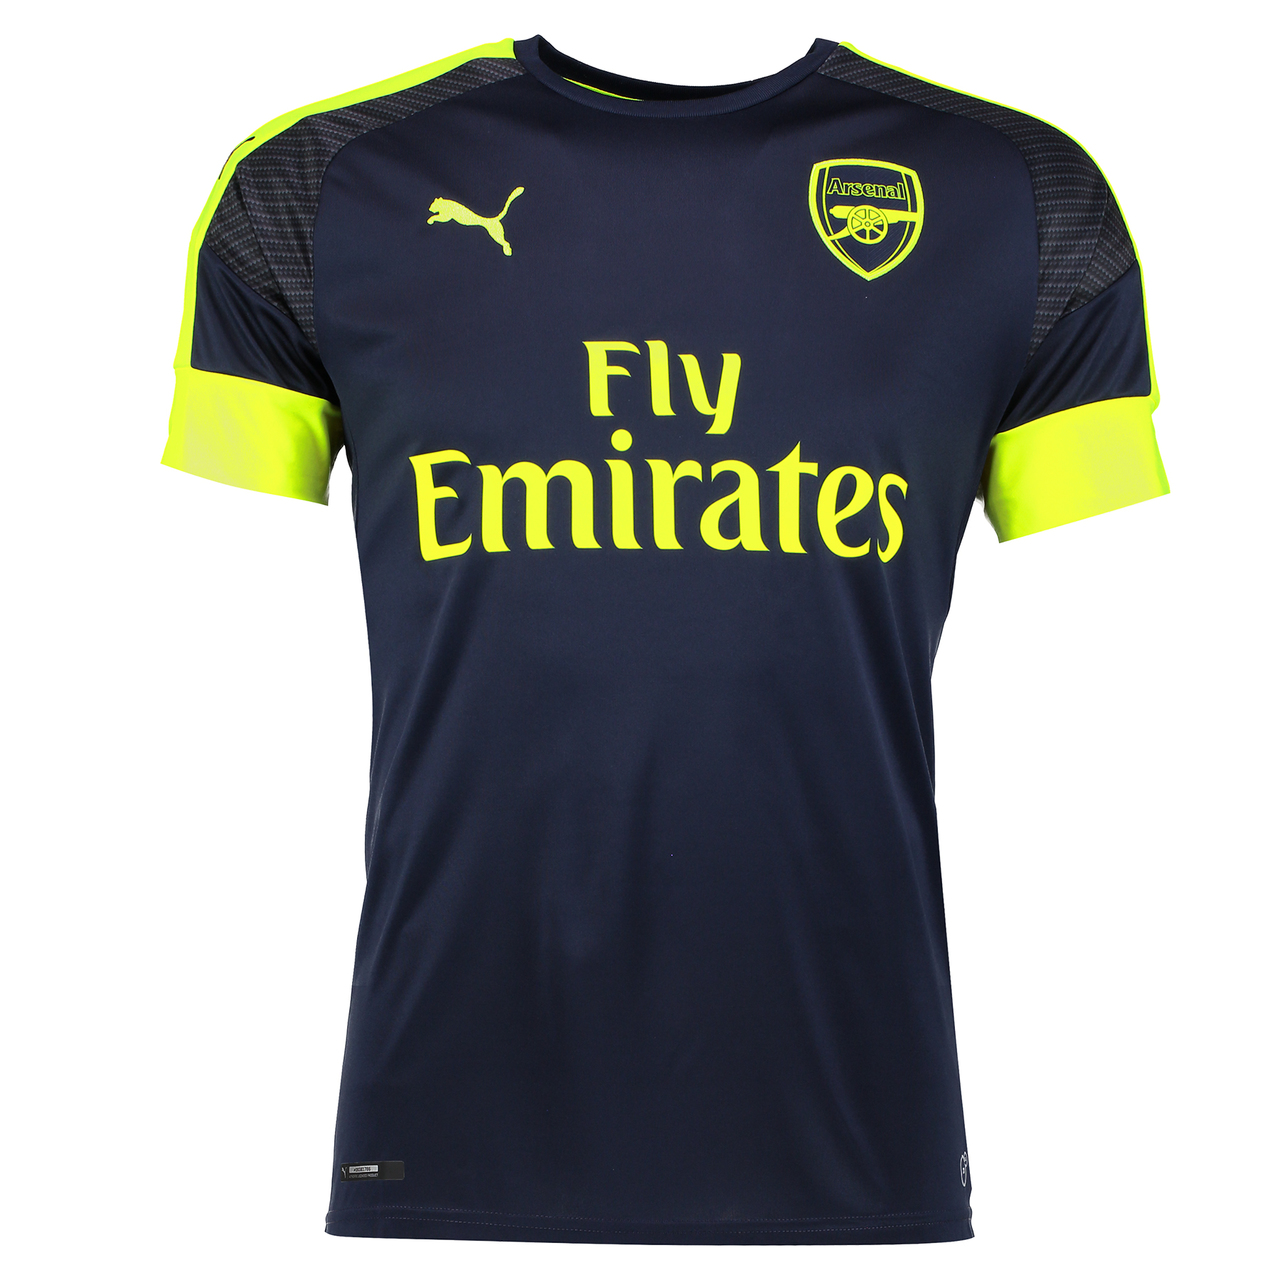 05e738201c6 arsenal away kit on sale   OFF79% Discounts